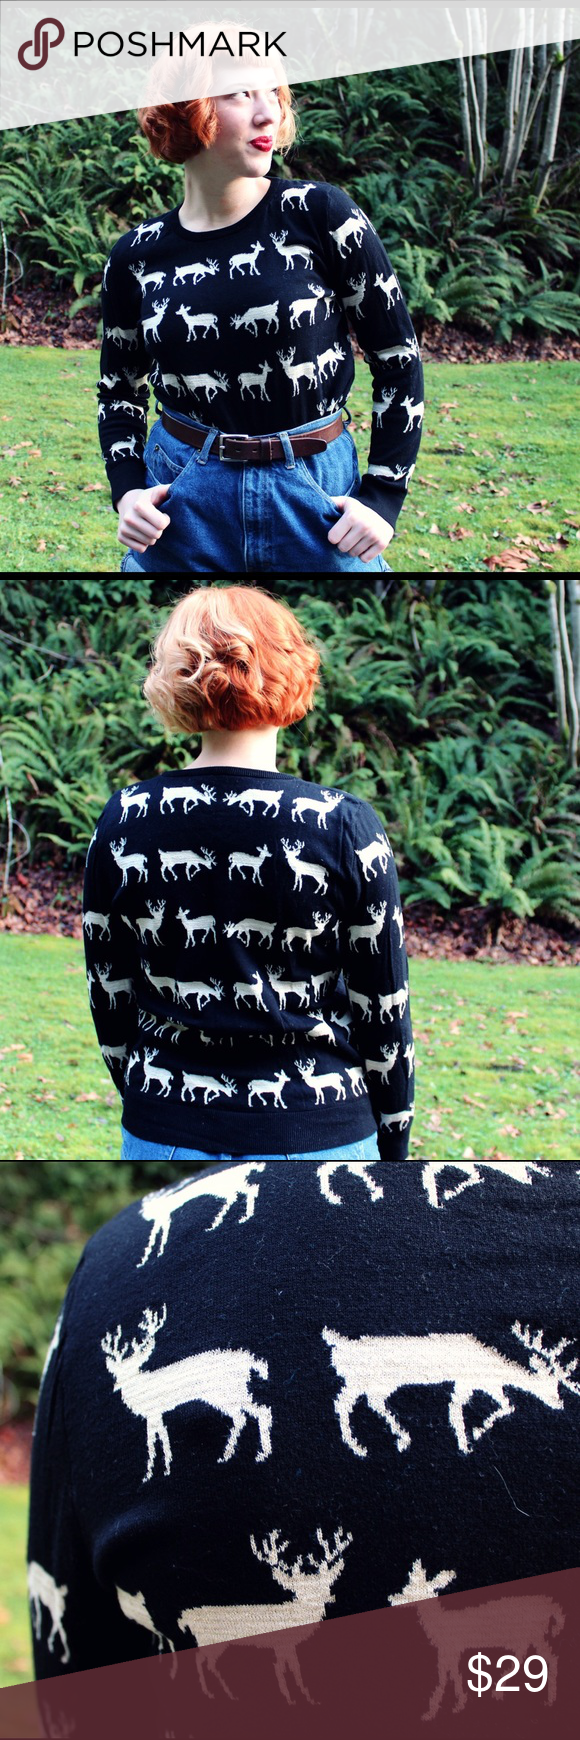 Sparkly Deer Sweater  The perfect cozy winter top complete with doe and buck Sparkly Deer Sweater  The perfect cozy winter top complete with doe and buck